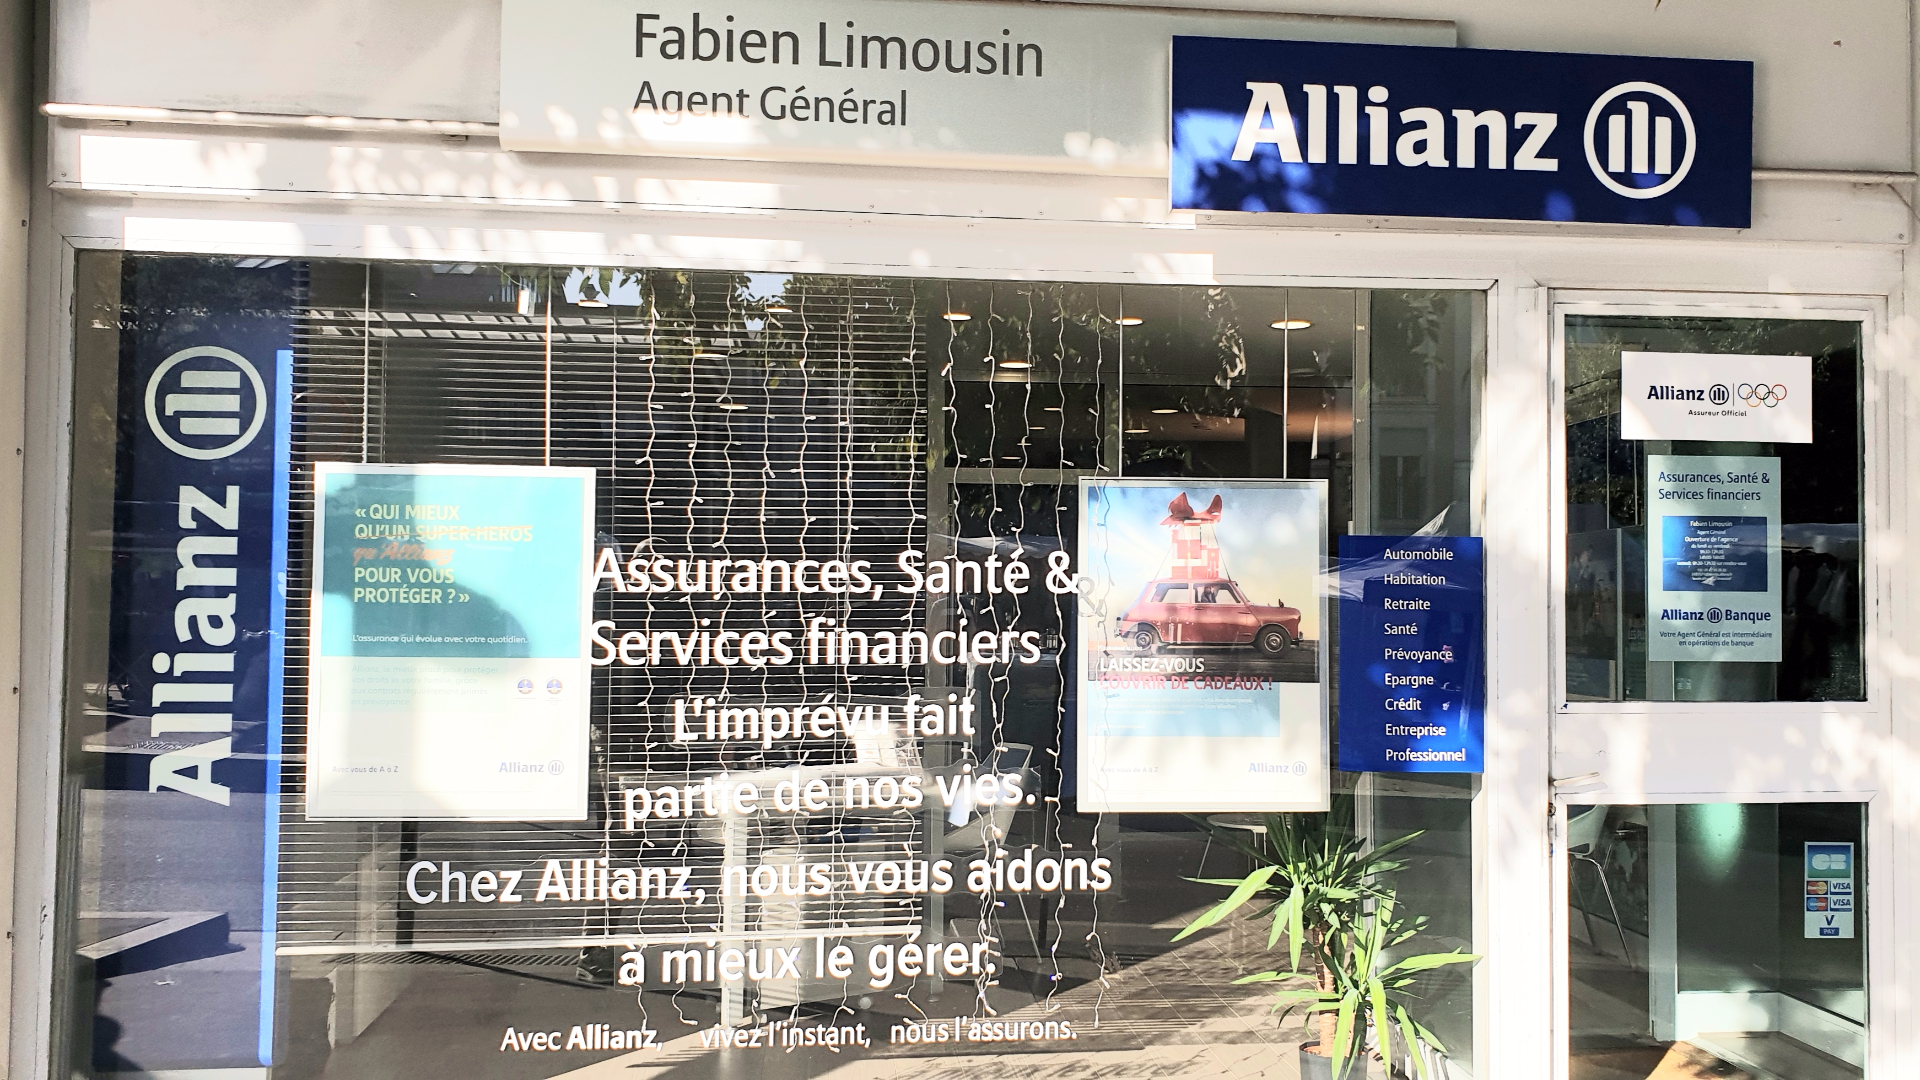 Allianz NOISY LE GRAND - Fabien LIMOUSIN